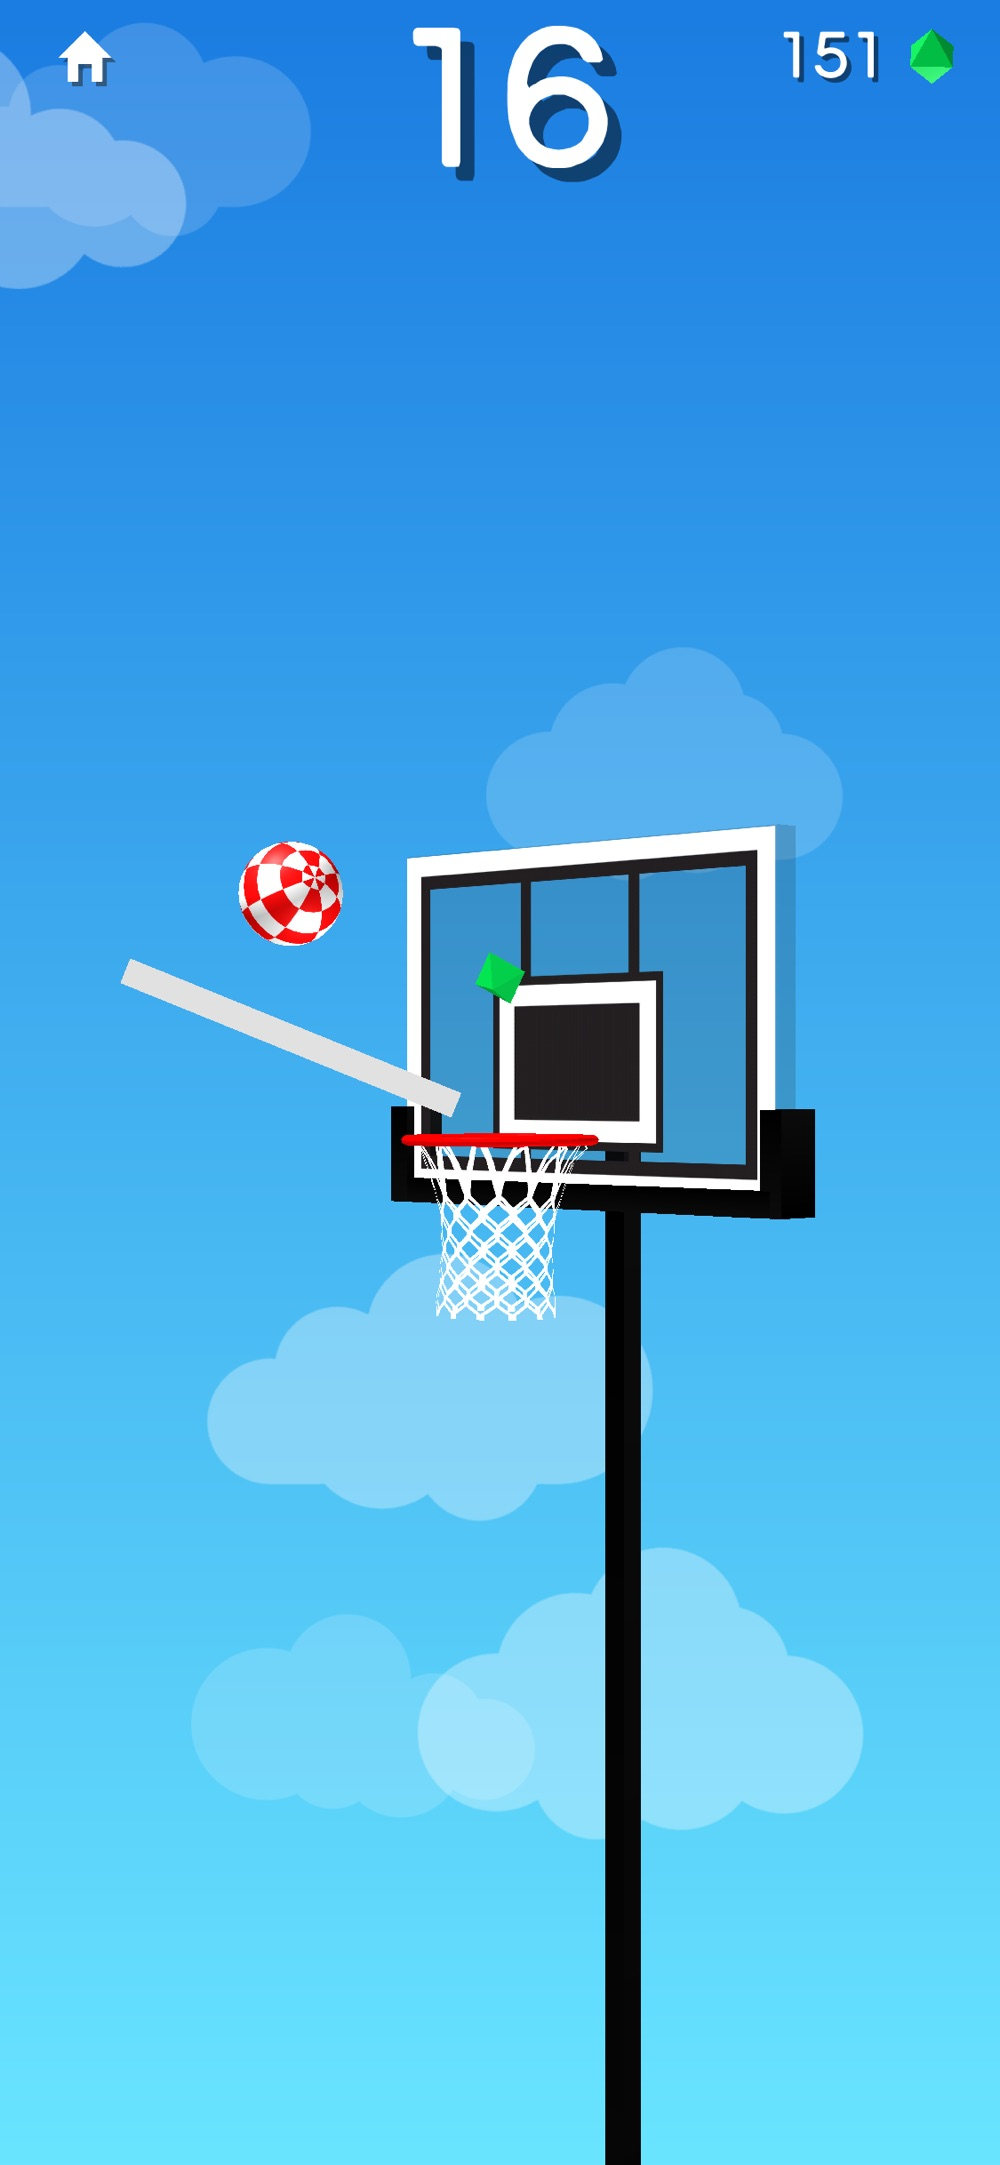 Hack tool for Line Dunk